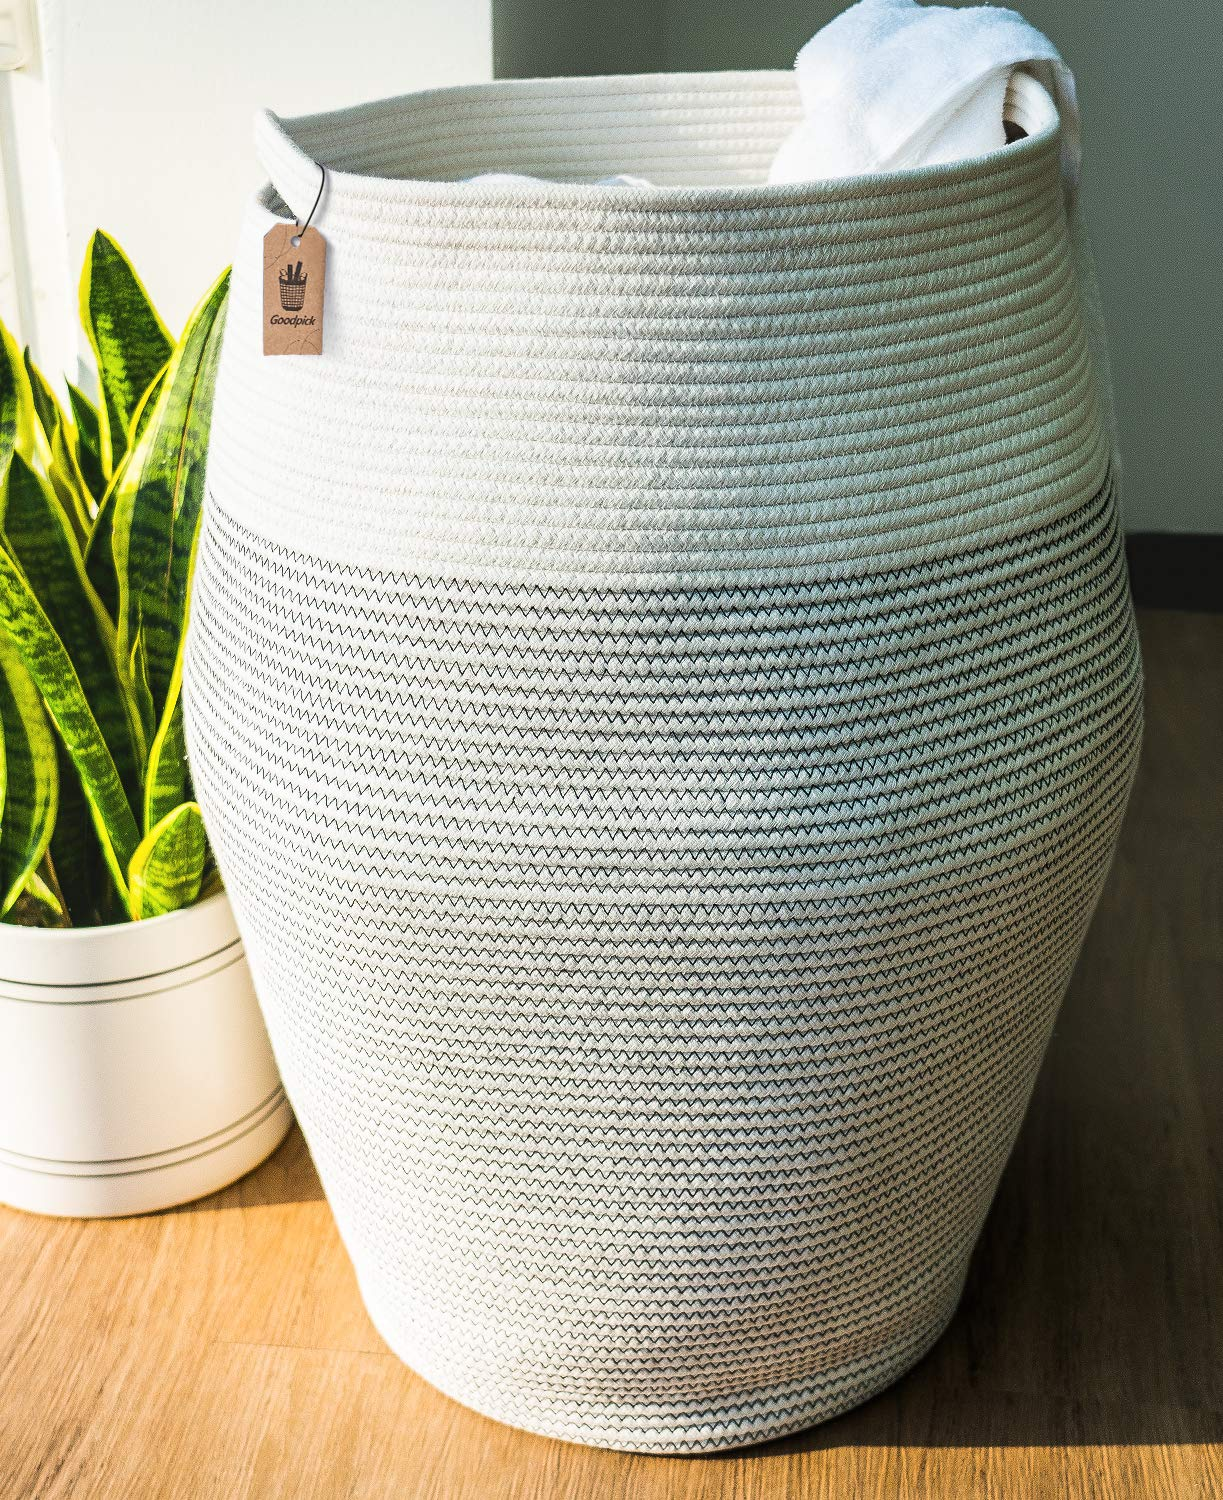 Goodpick Laundry Hamper | Woven Cotton Rope Dirty Clothes Hamper Tall Kids Curver Laundry Basket Large, 25.6'' Height by Goodpick